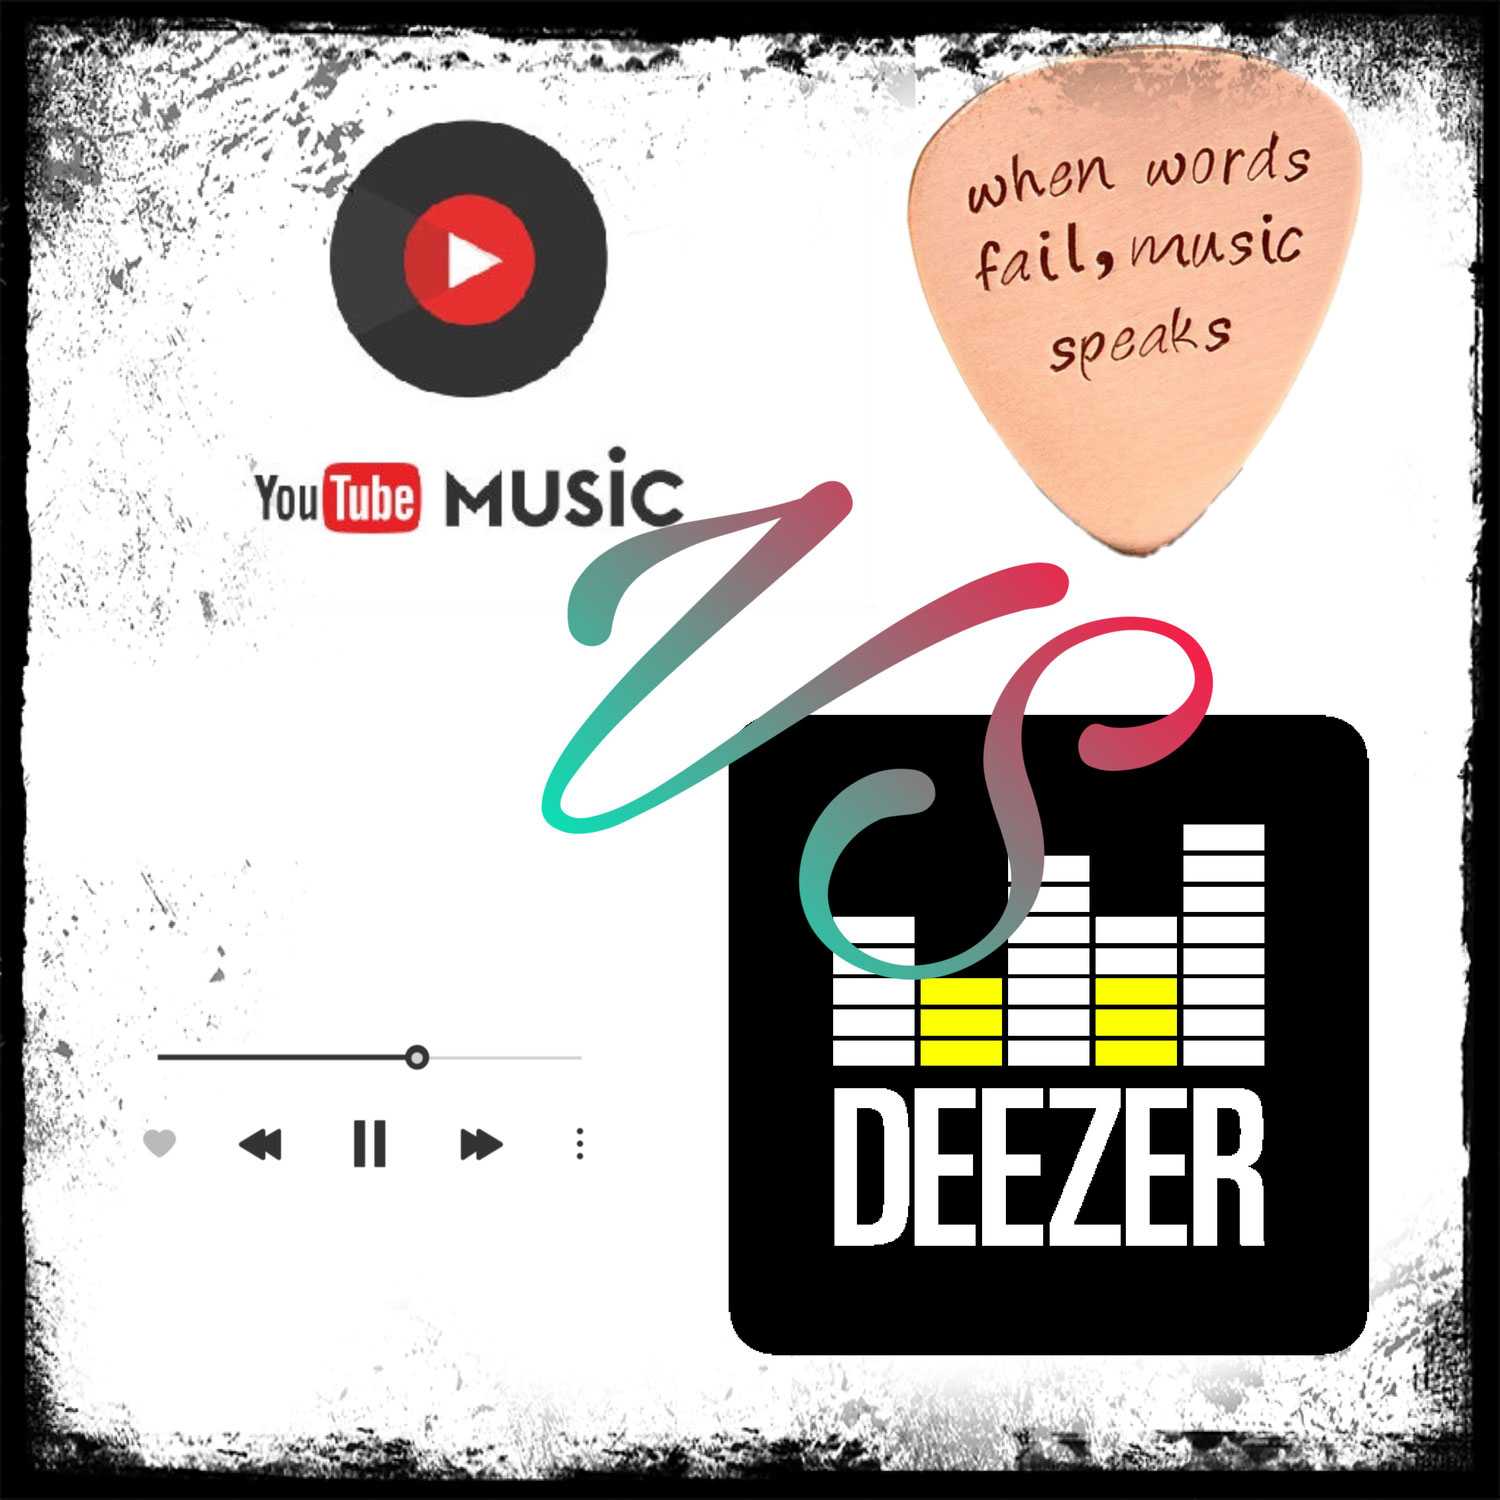 Deezer vs Youtube Music